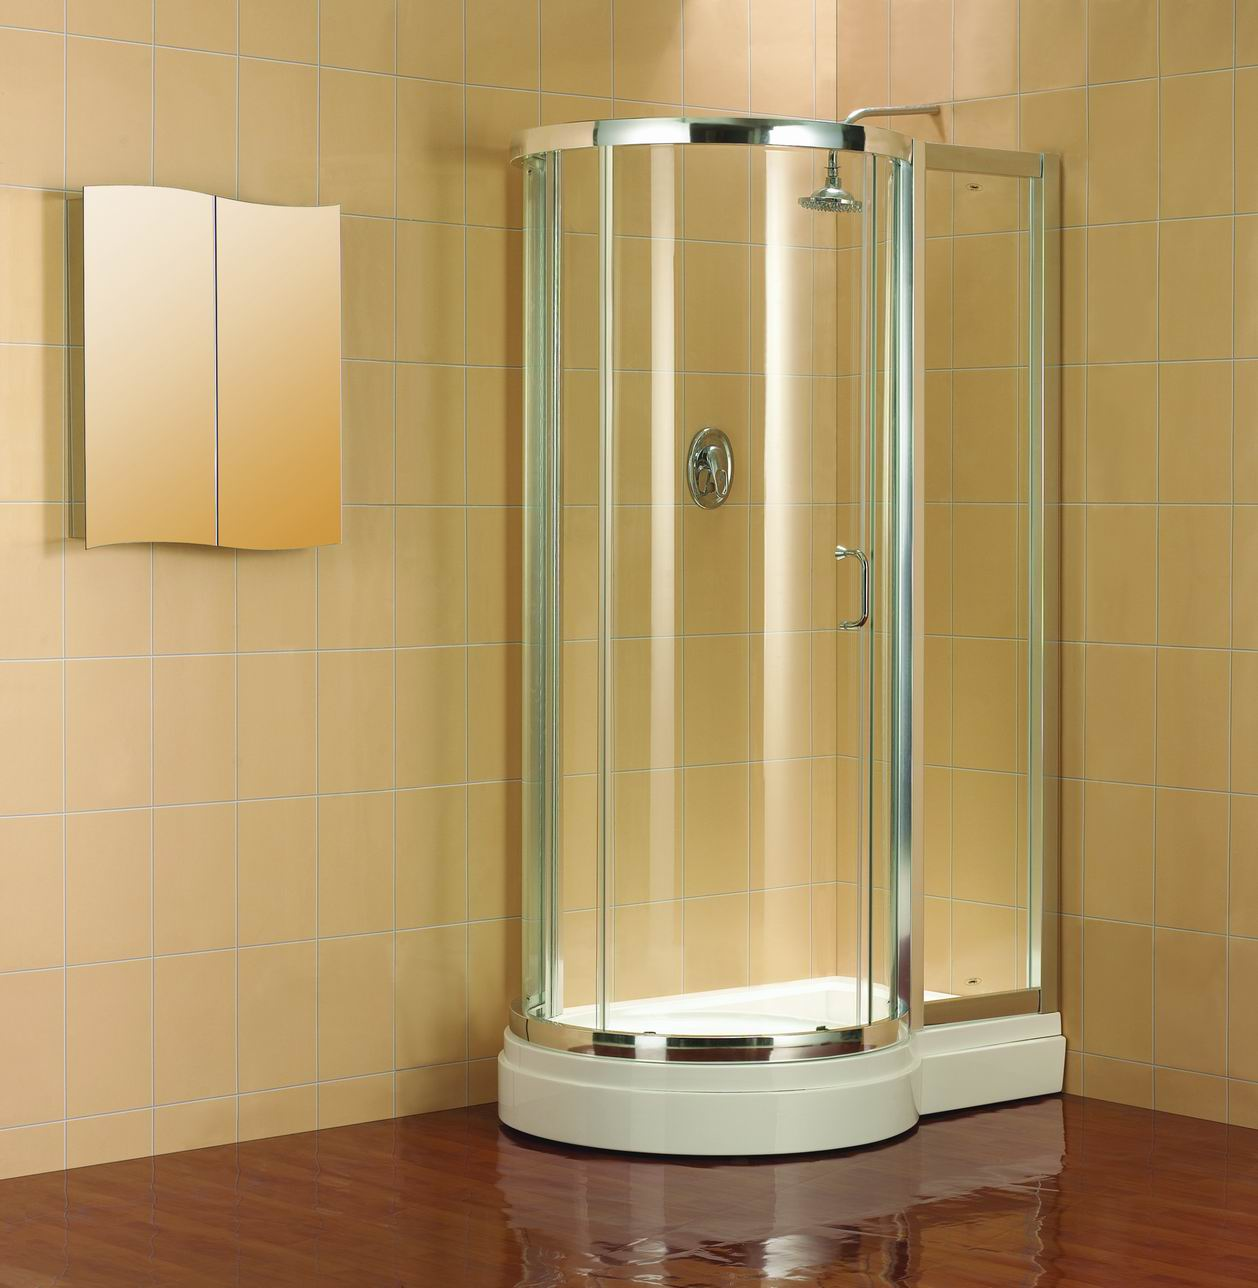 Quadrant Shower Doors The Alternative Bathroom Blog - Alternative to tiles in shower cubicle